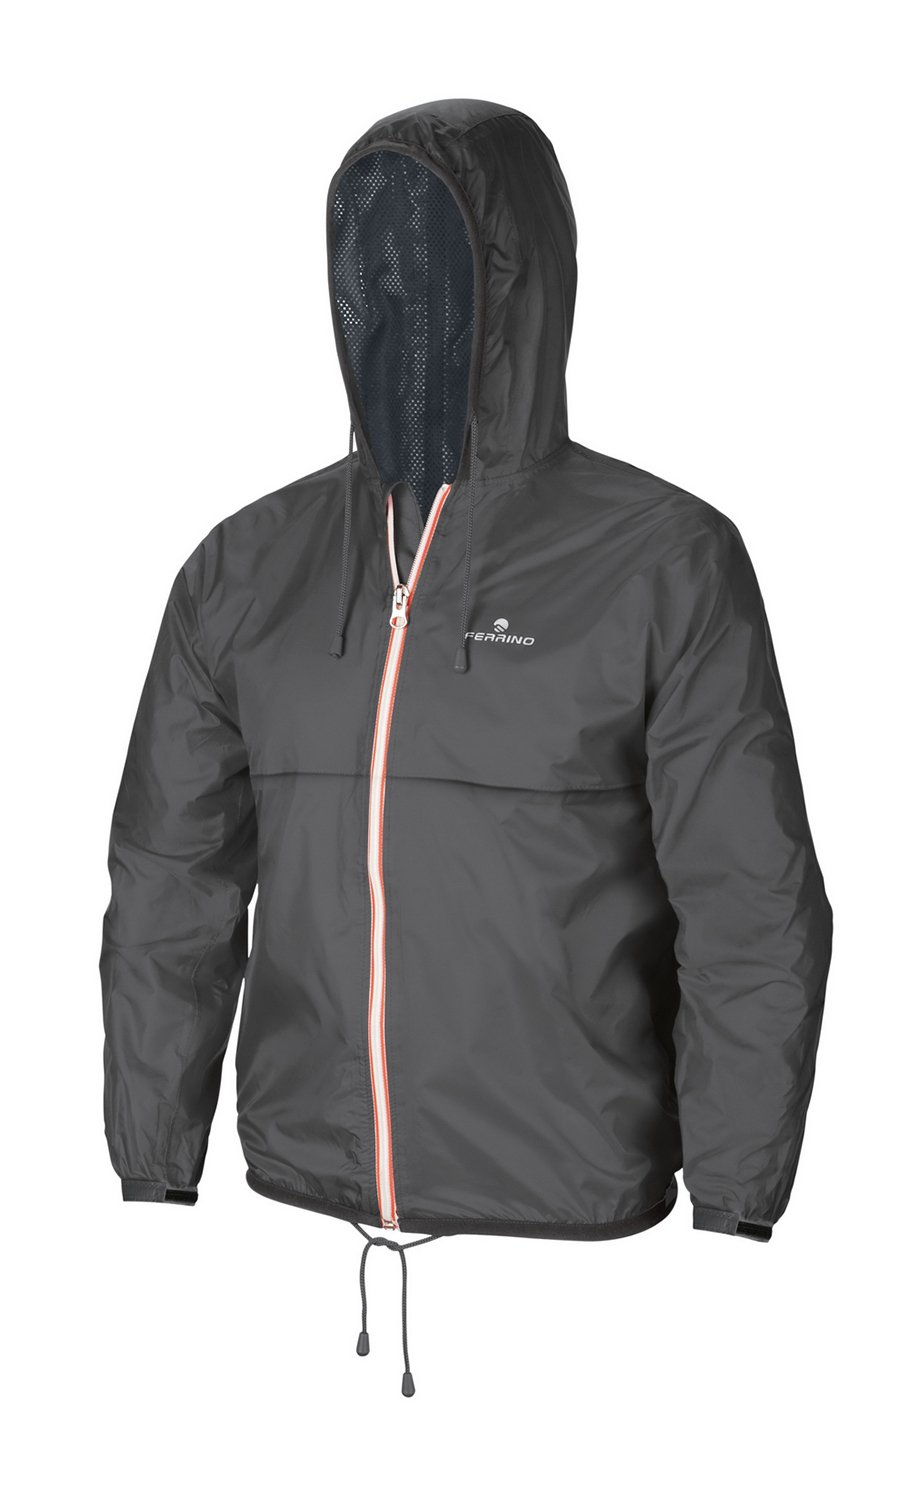 'Air Motion Ferrino Rain Jacket \ \ '